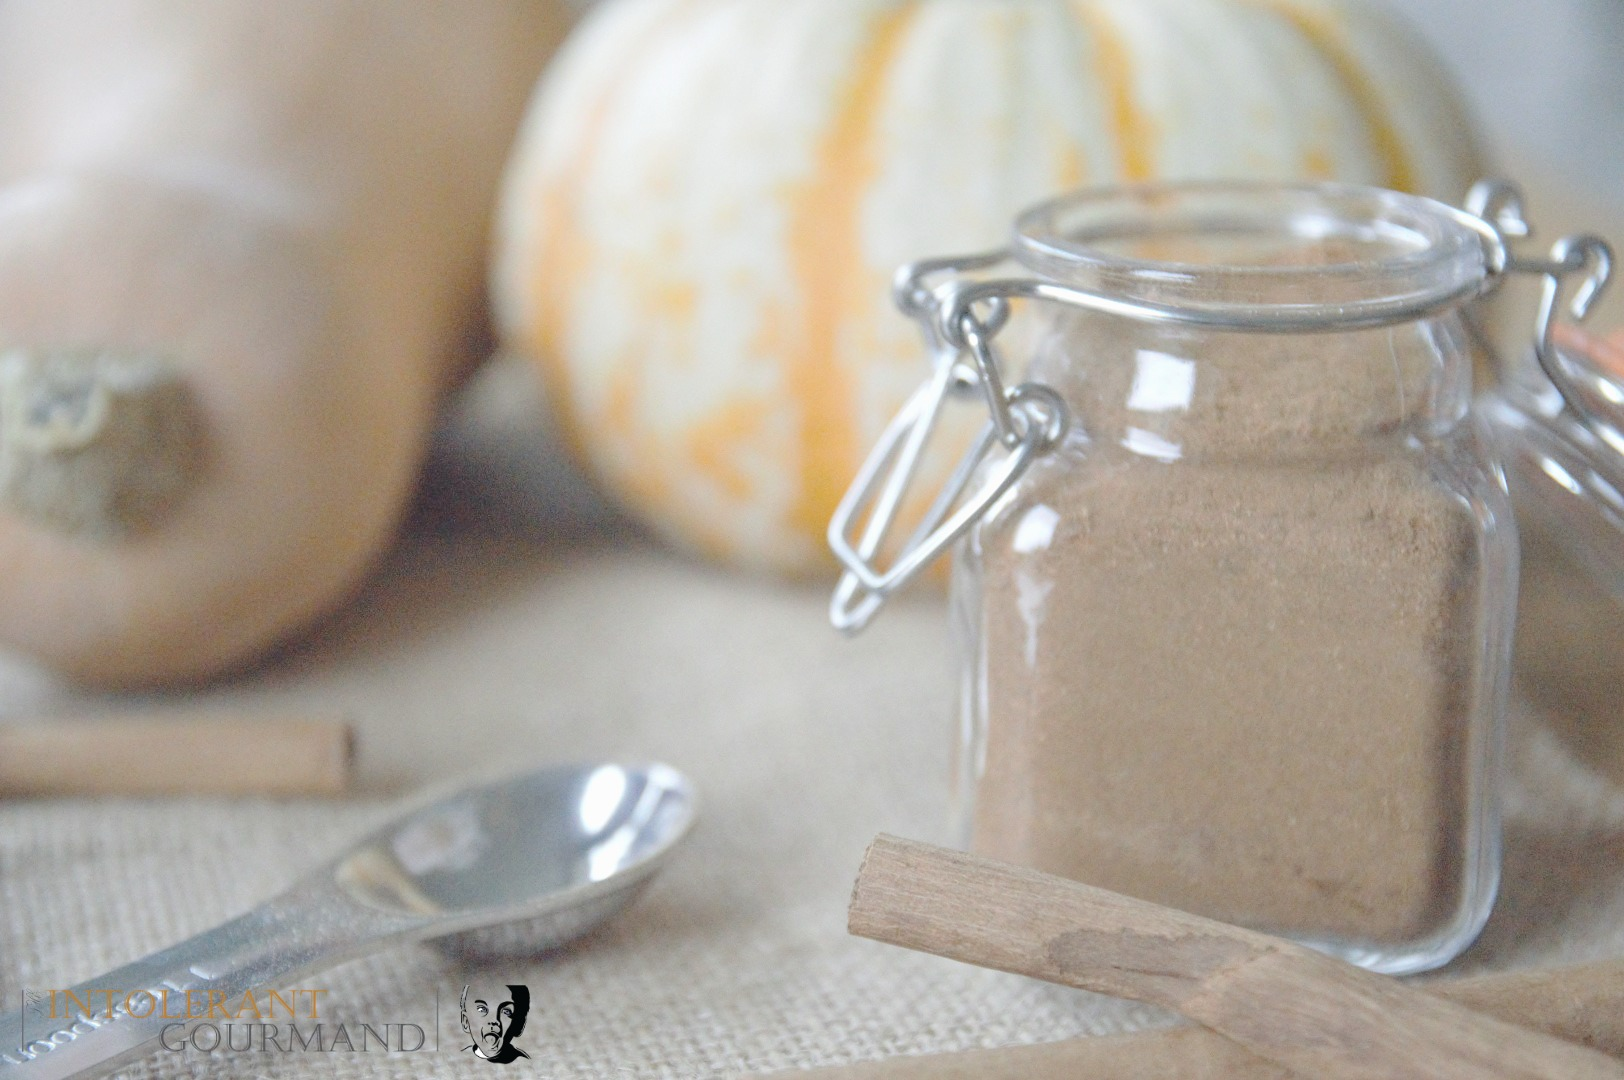 Pumpkin spice mix - perfect for crumbles, latte, cheesecake, cake and more! www.intolerantgourmand.com